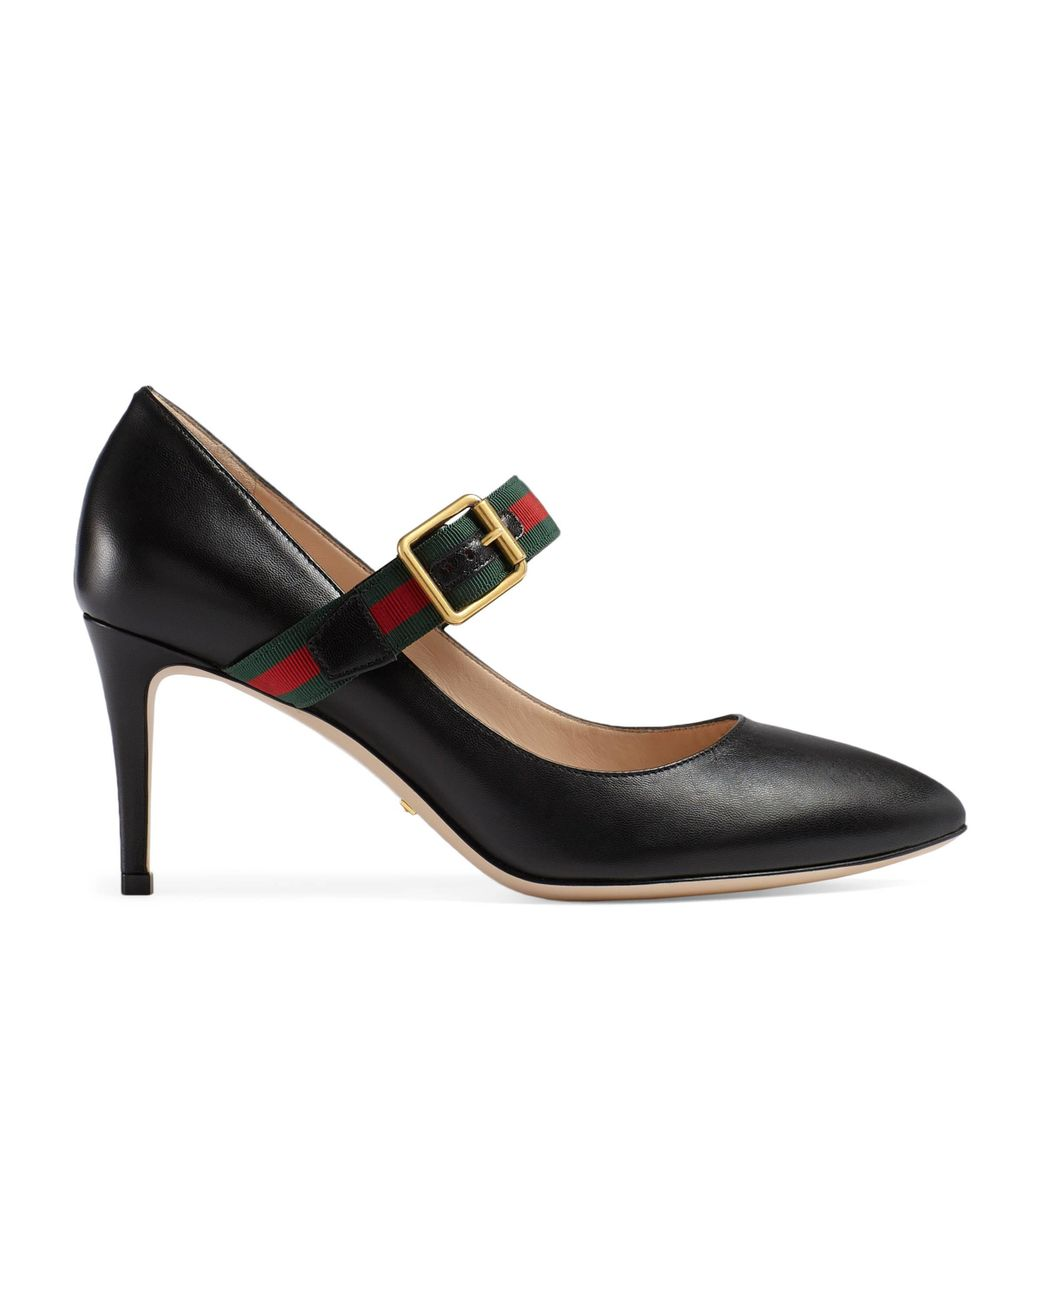 52d666e4eec Gucci Sylvie Leather Mid Heel Pump in Black - Lyst